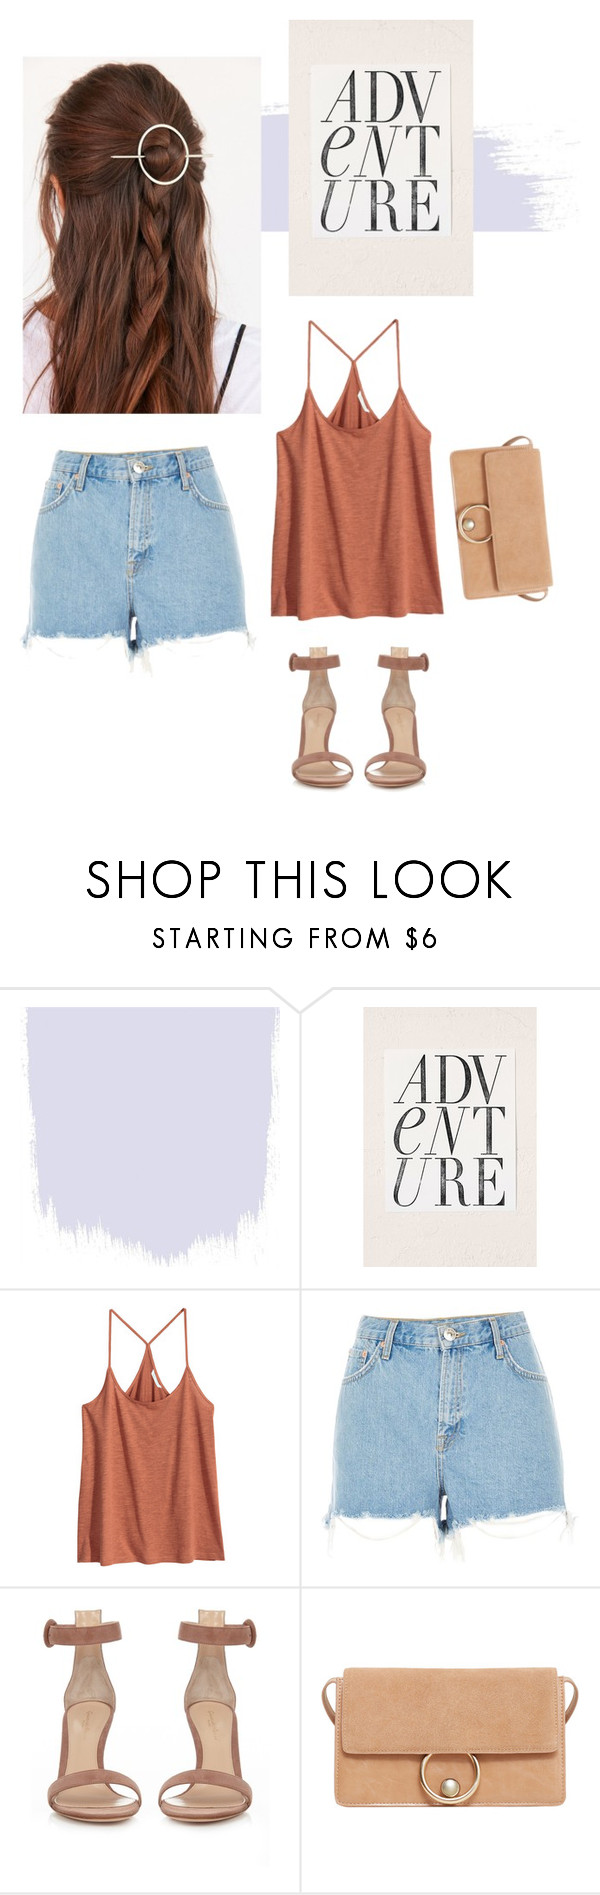 """Untitled #1891"" by katerina-rampota ❤ liked on Polyvore featuring Urban Outfitters, H&M, River Island, Gianvito Rossi, MANGO, vintage, Summer, indie and polyvorecommunity"